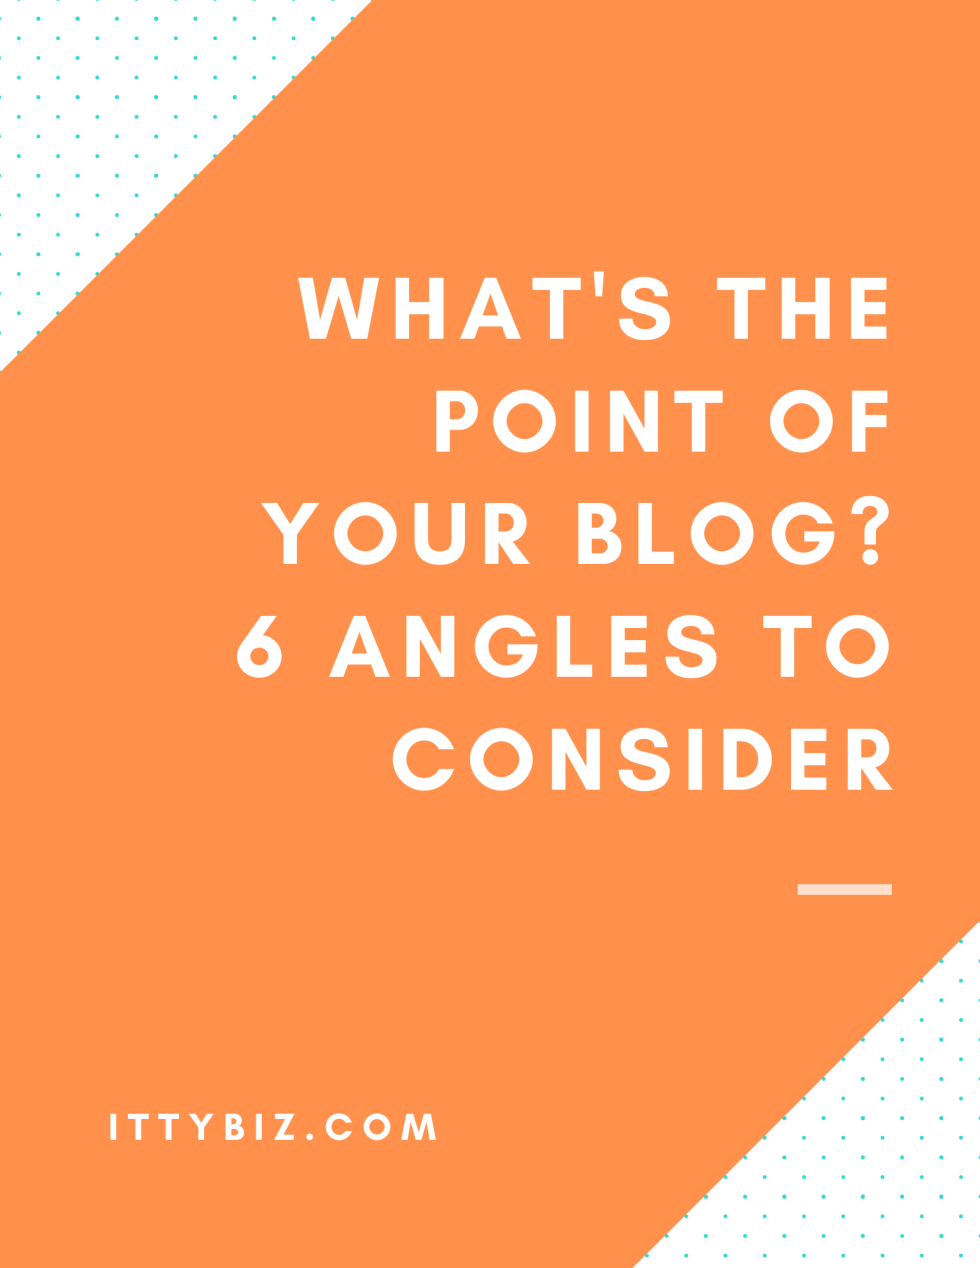 What's The Point Of Your Blog?